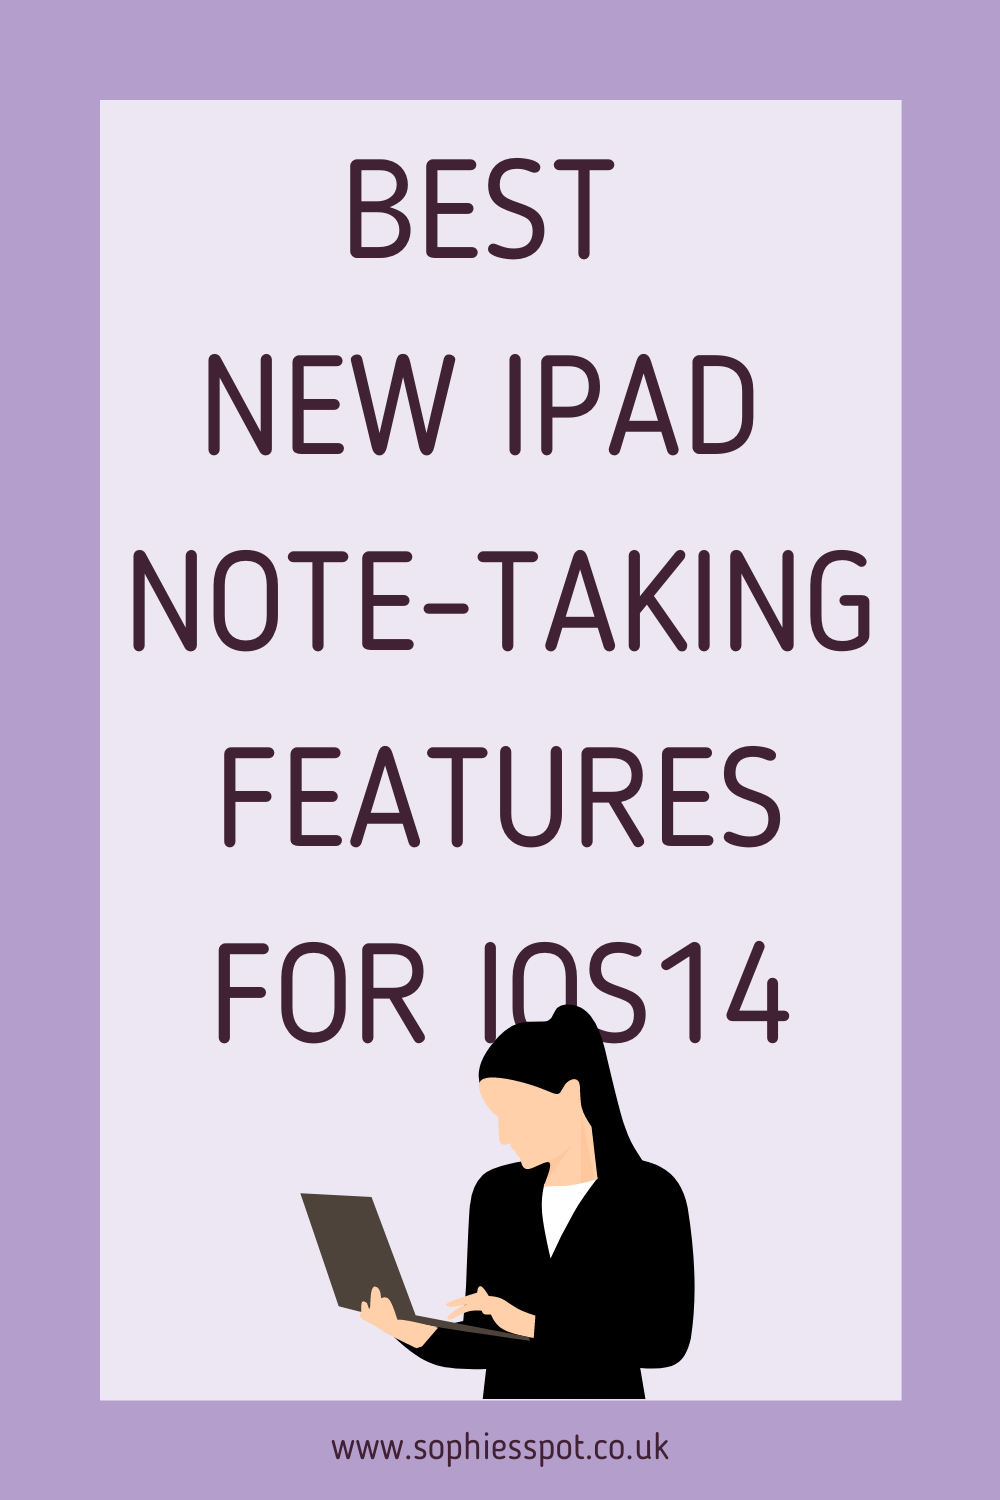 best new ipad note taking feature for ios14 graphic